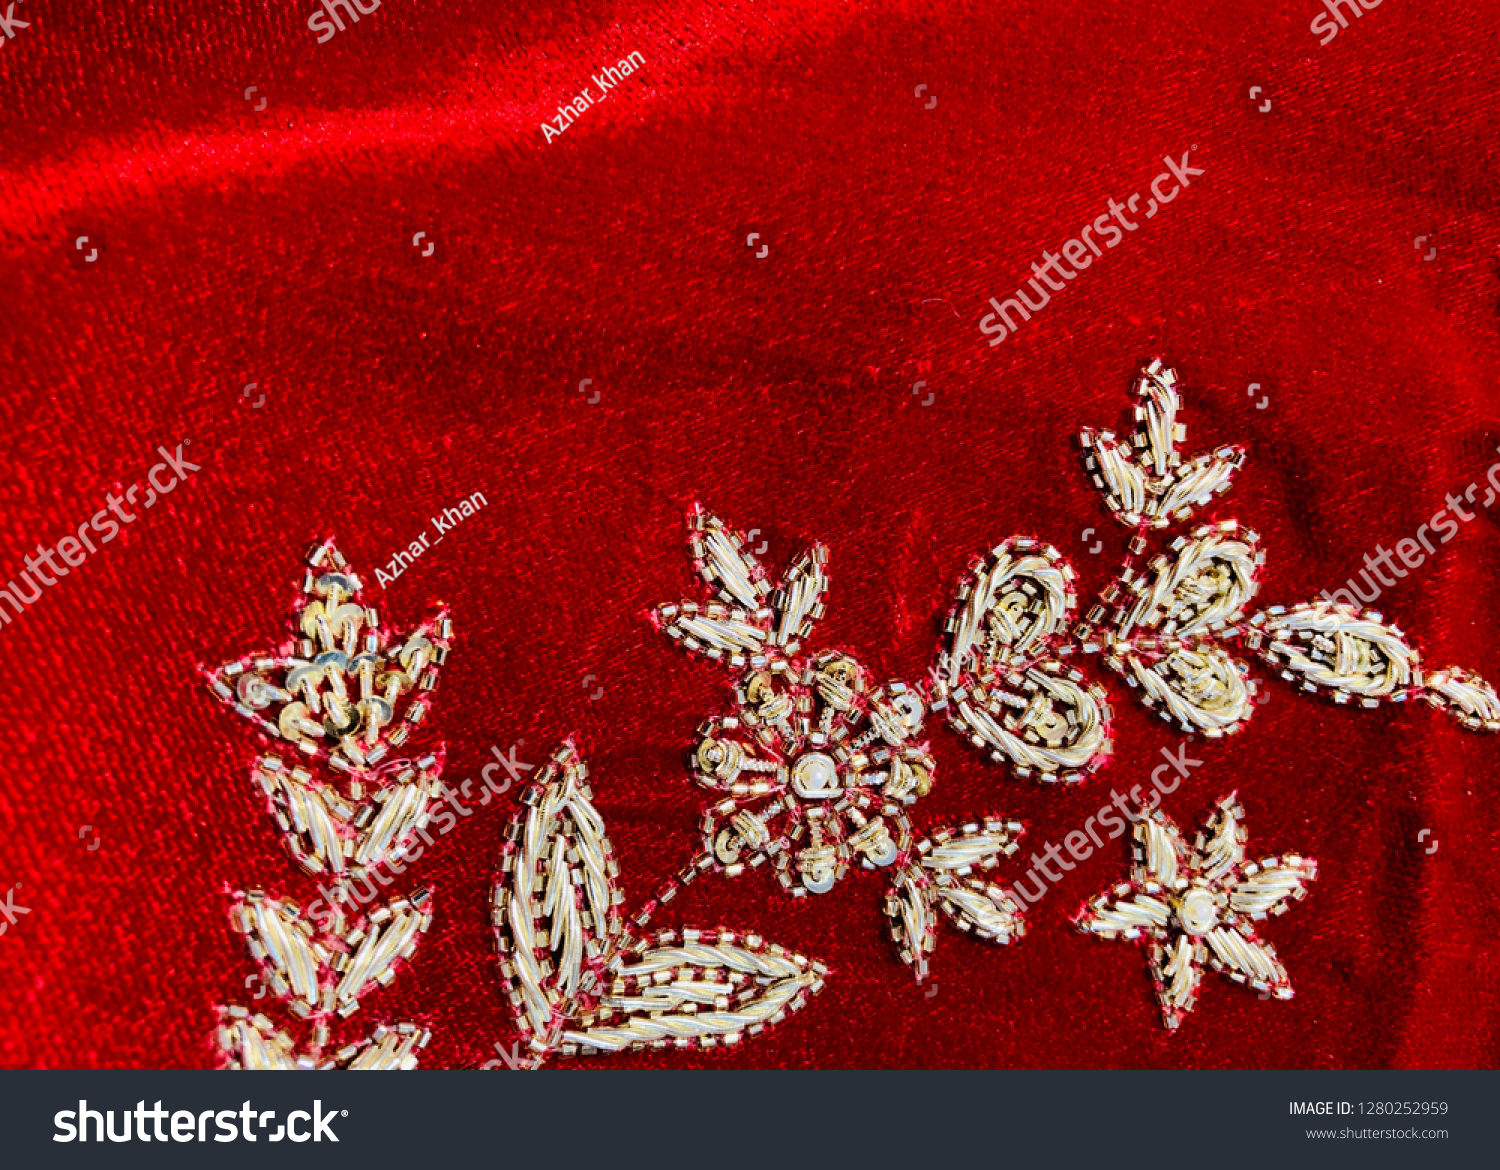 Hand Embroidered Floral Pattern On Velvet Stock Photo Edit Now 1280252959